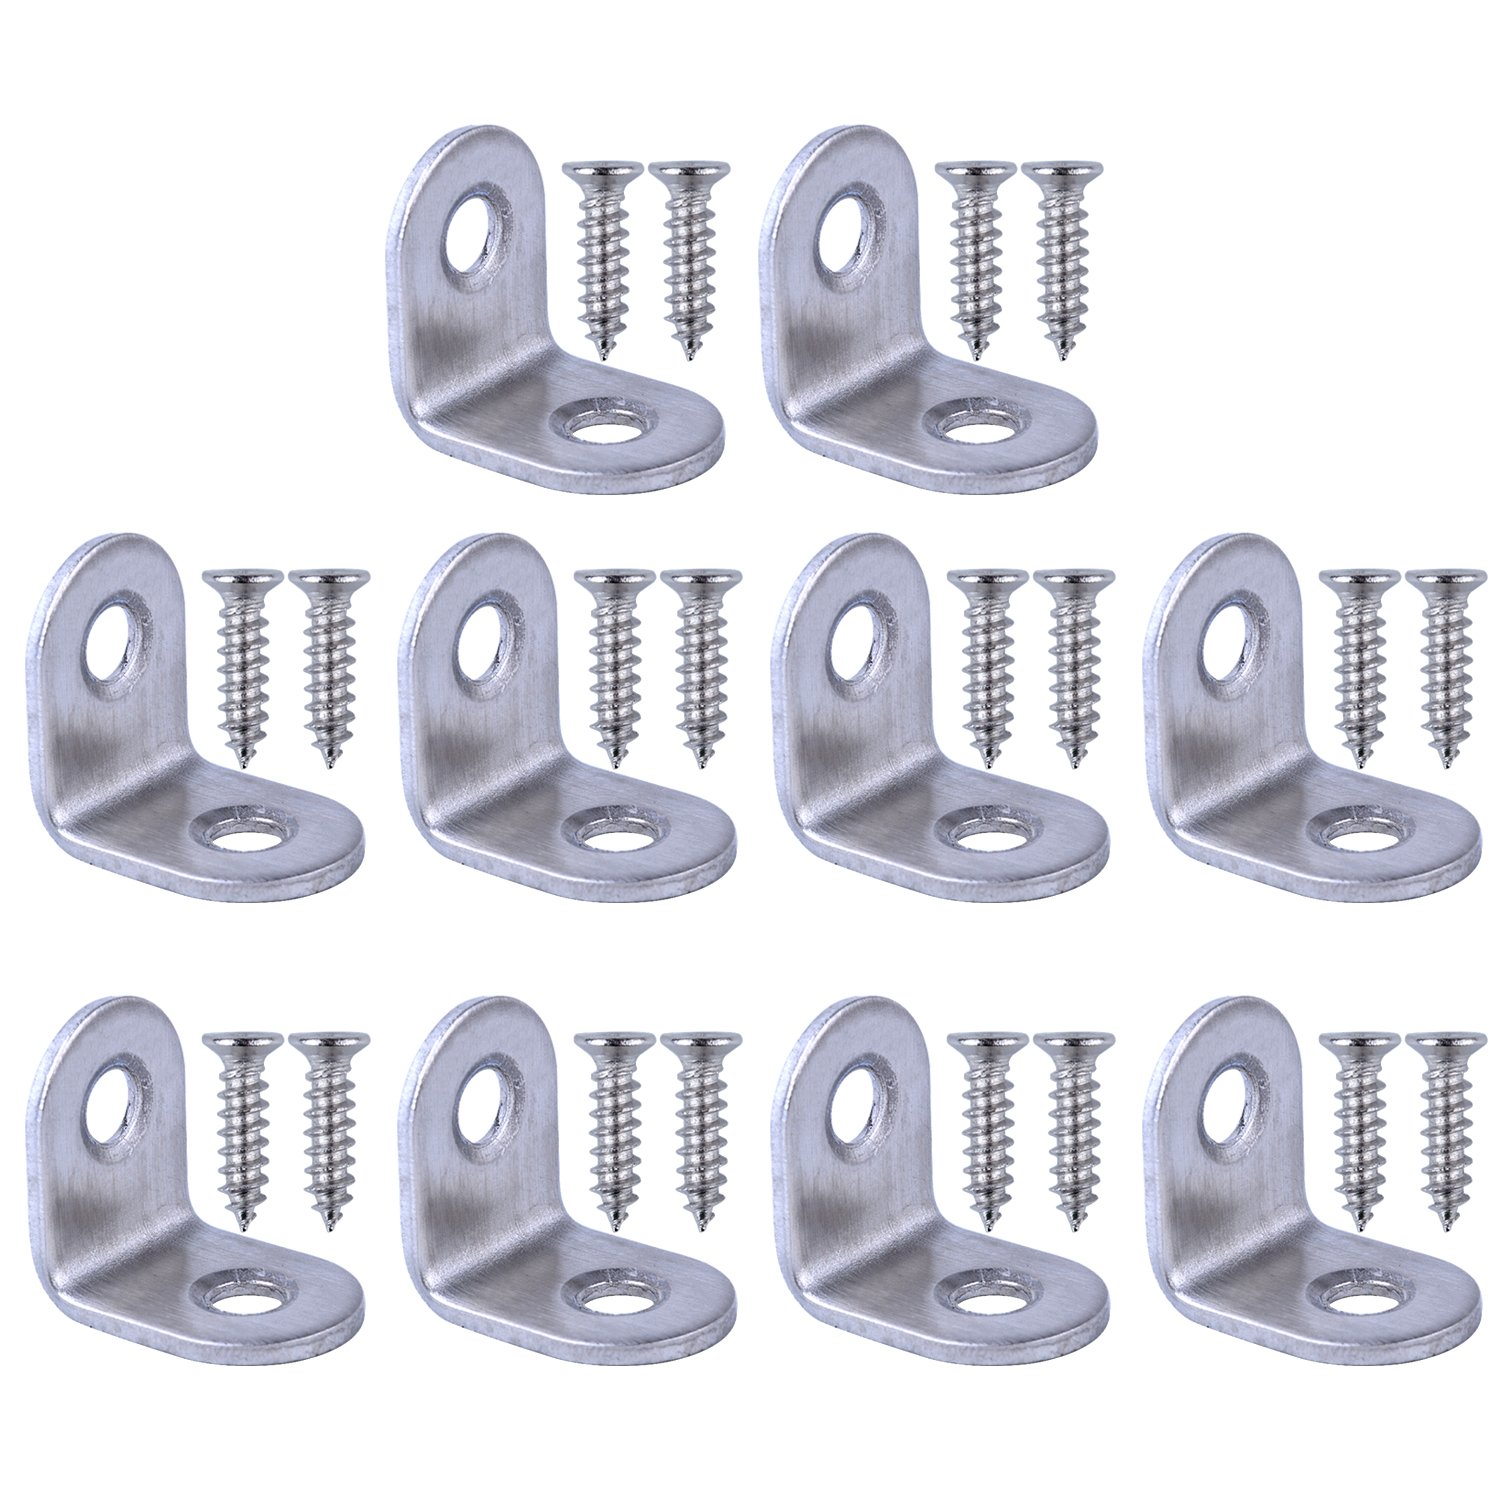 Bronagrand 10pcs 90 Degree Right Angle Brackets Fastener Stainless Steel Corner Braces with Screws 20x20mm